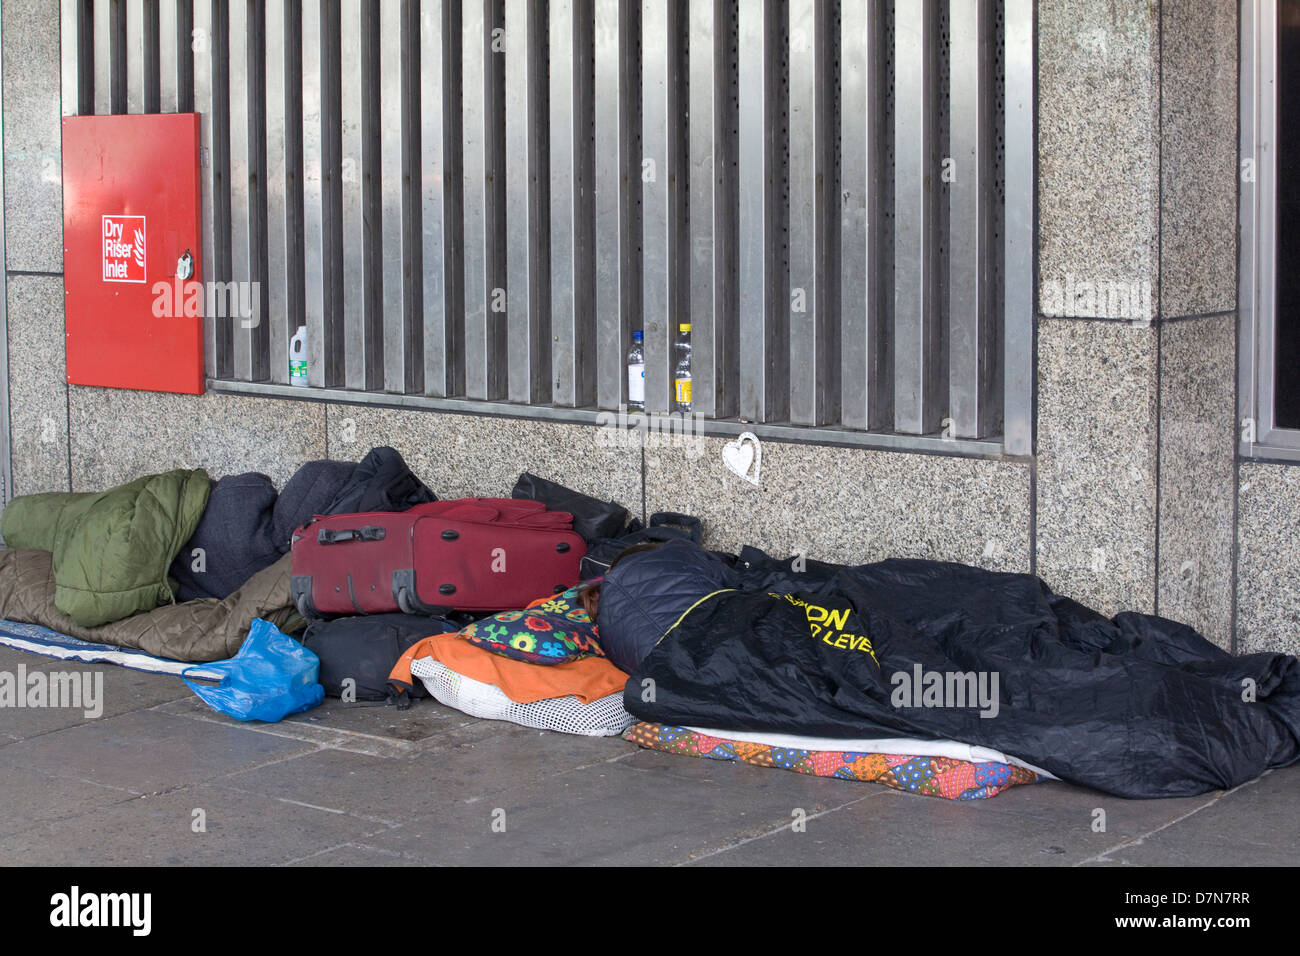 homeless people sleeping on the streets of london england